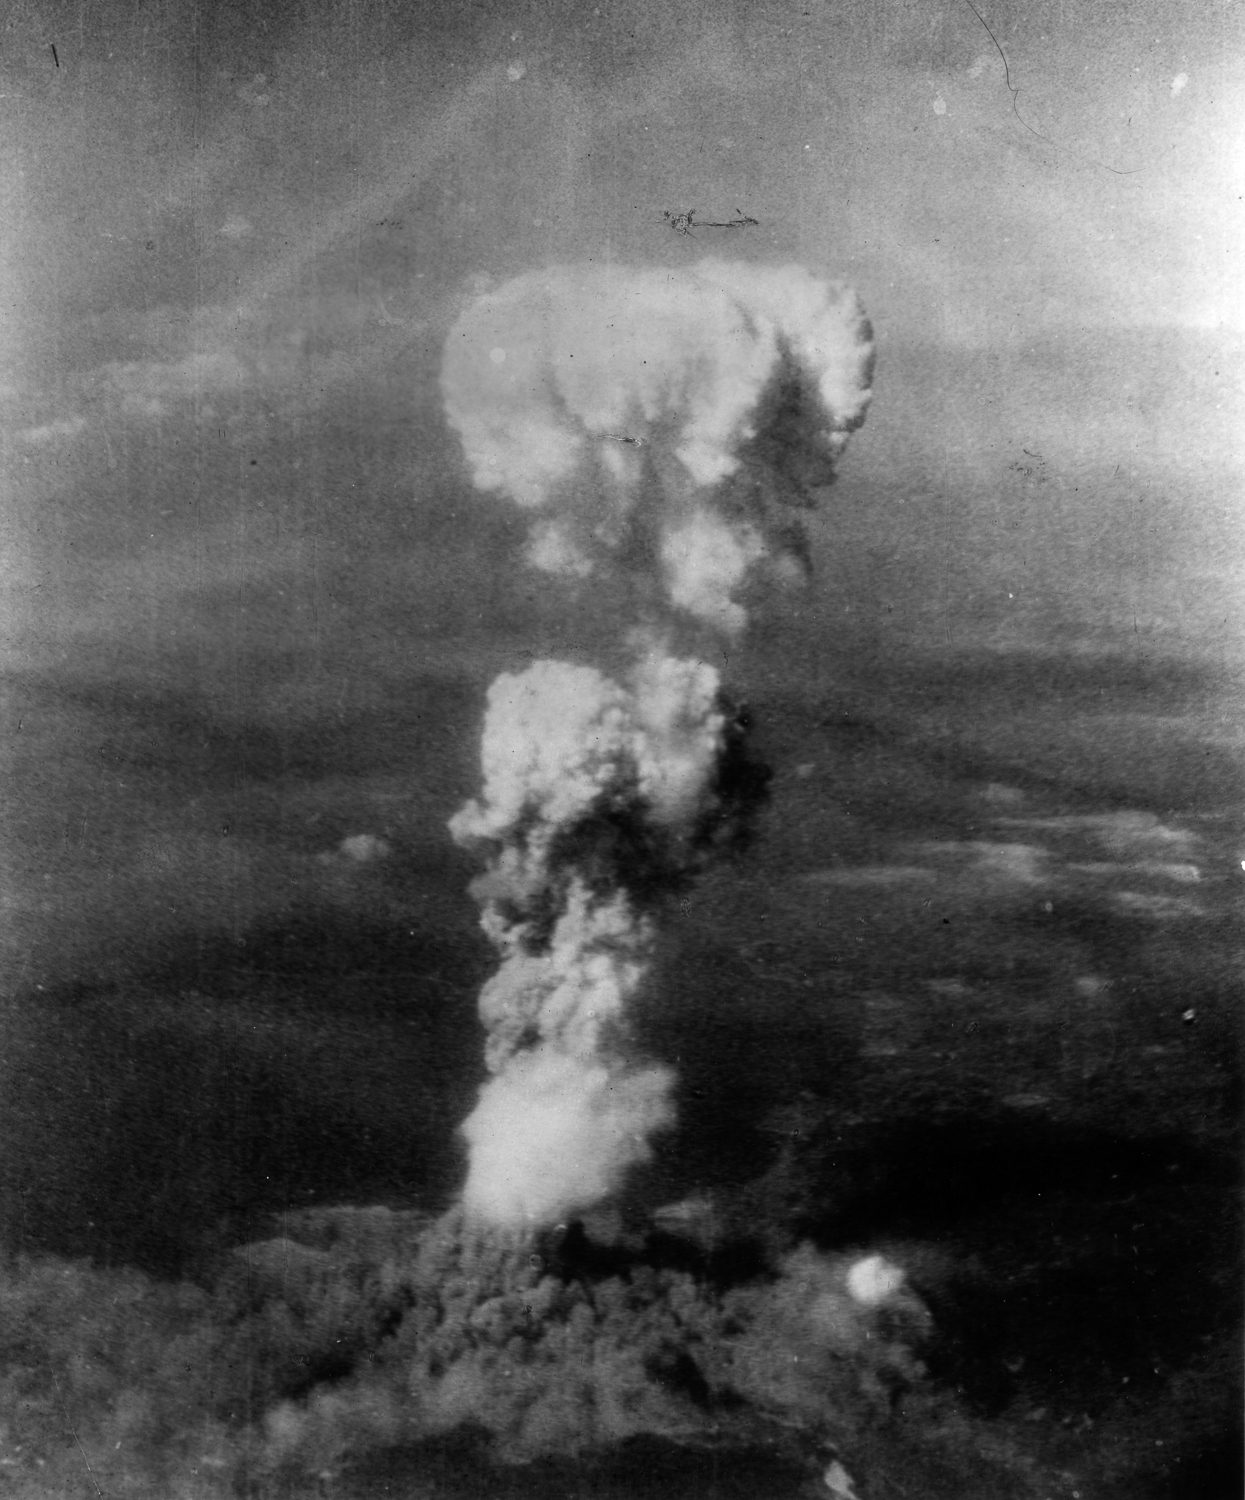 dropping of the atomic bombs forever changed the face of warfare Truman's decision to drop the atomic bomb changed the way americans thought about war because of its traumatic after effects under president franklin d roosevelt's administration the atomic bomb was being developed.